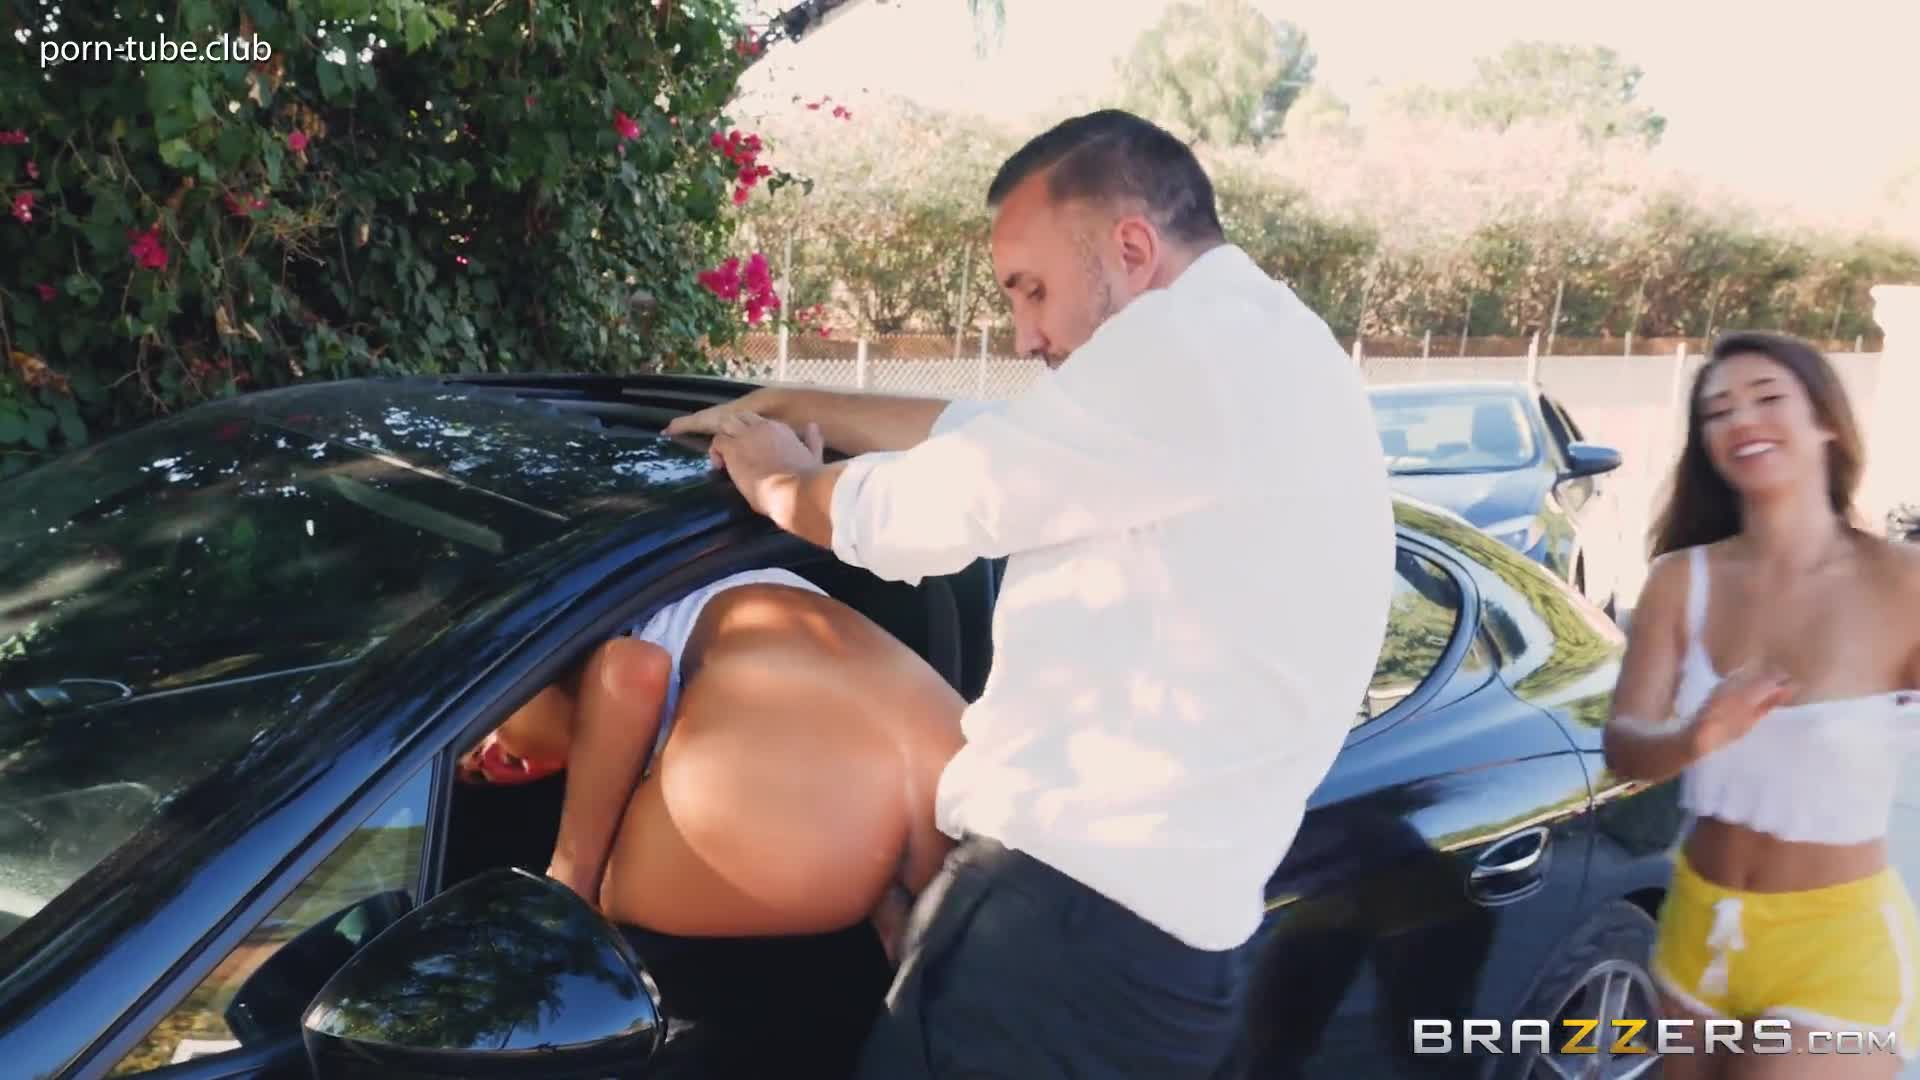 BabyGotBoobs 17.10.04 August Ames And Eva Lovia Pulled Over Pussy